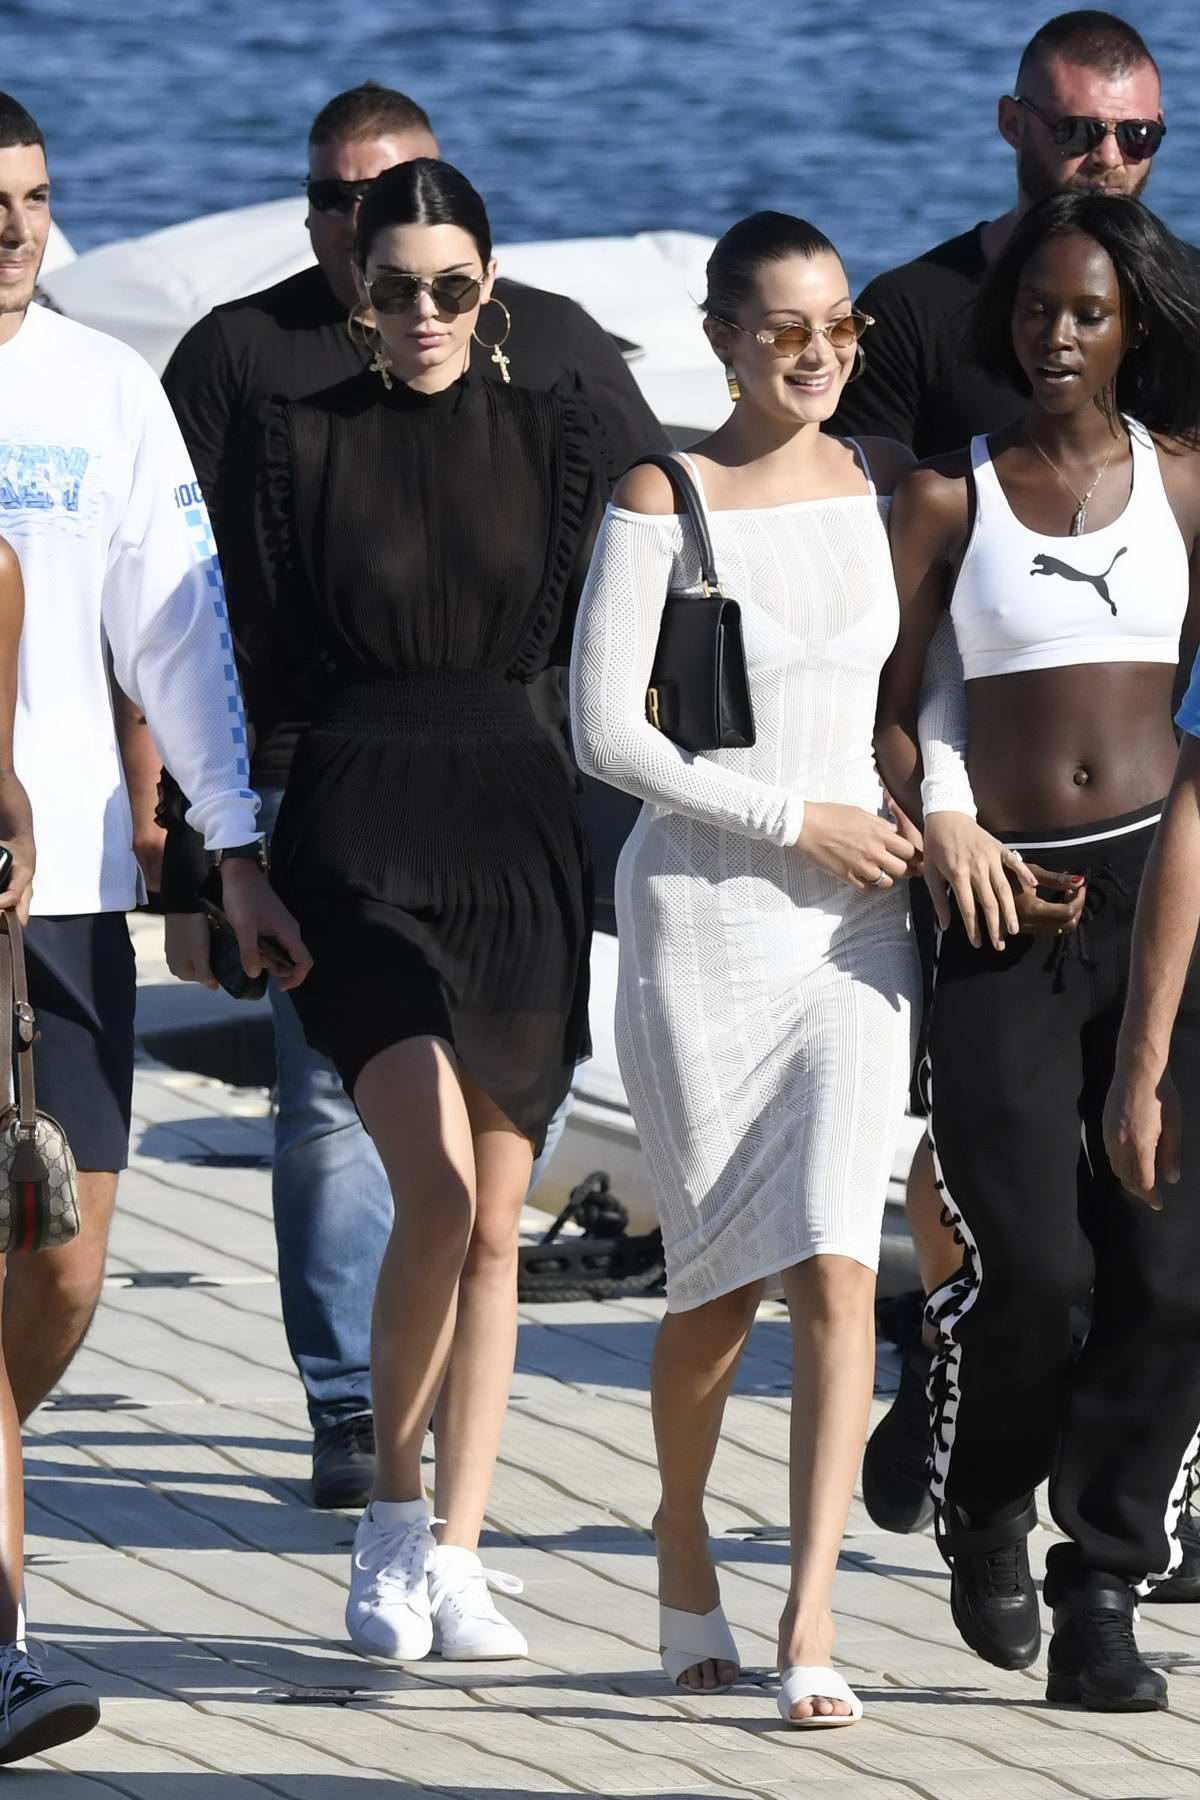 Kendall Jenner and Bella Hadid on Nammos Beach in Mykonos, Greece